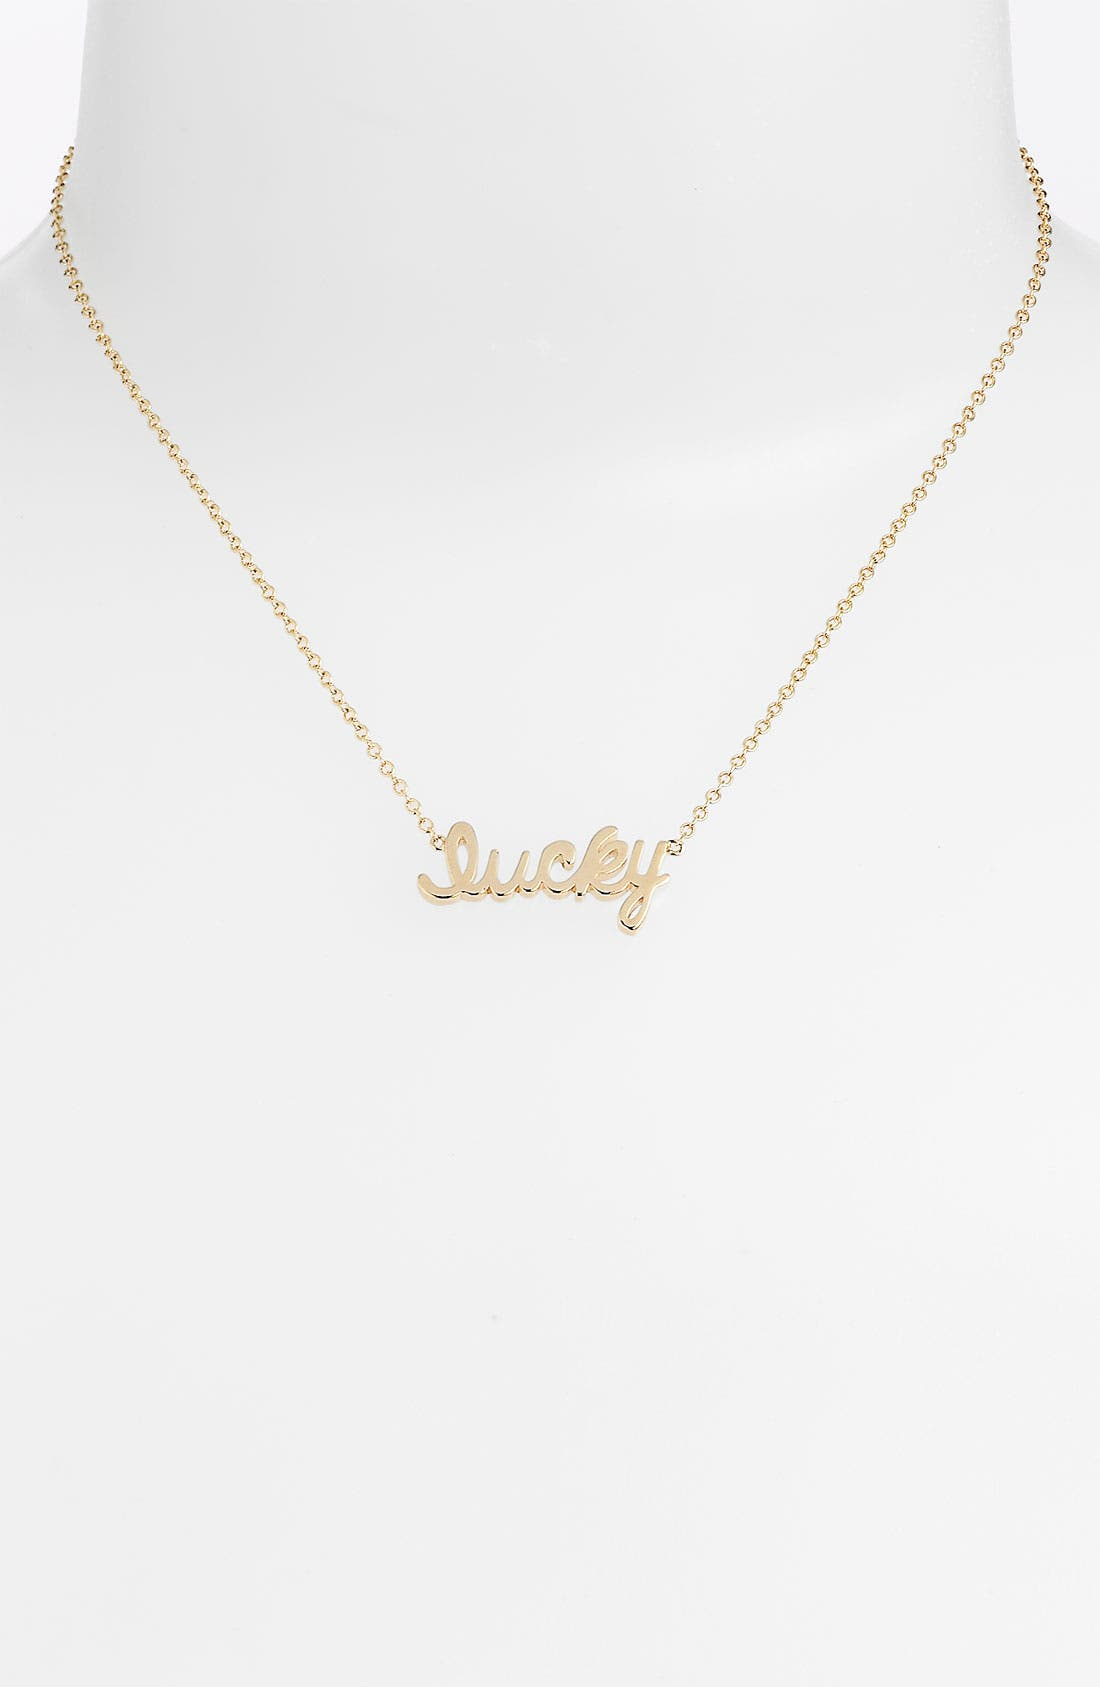 Alternate Image 1 Selected - Ariella Collection 'Messages - Lucky' Script Pendant Necklace (Nordstrom Exclusive)